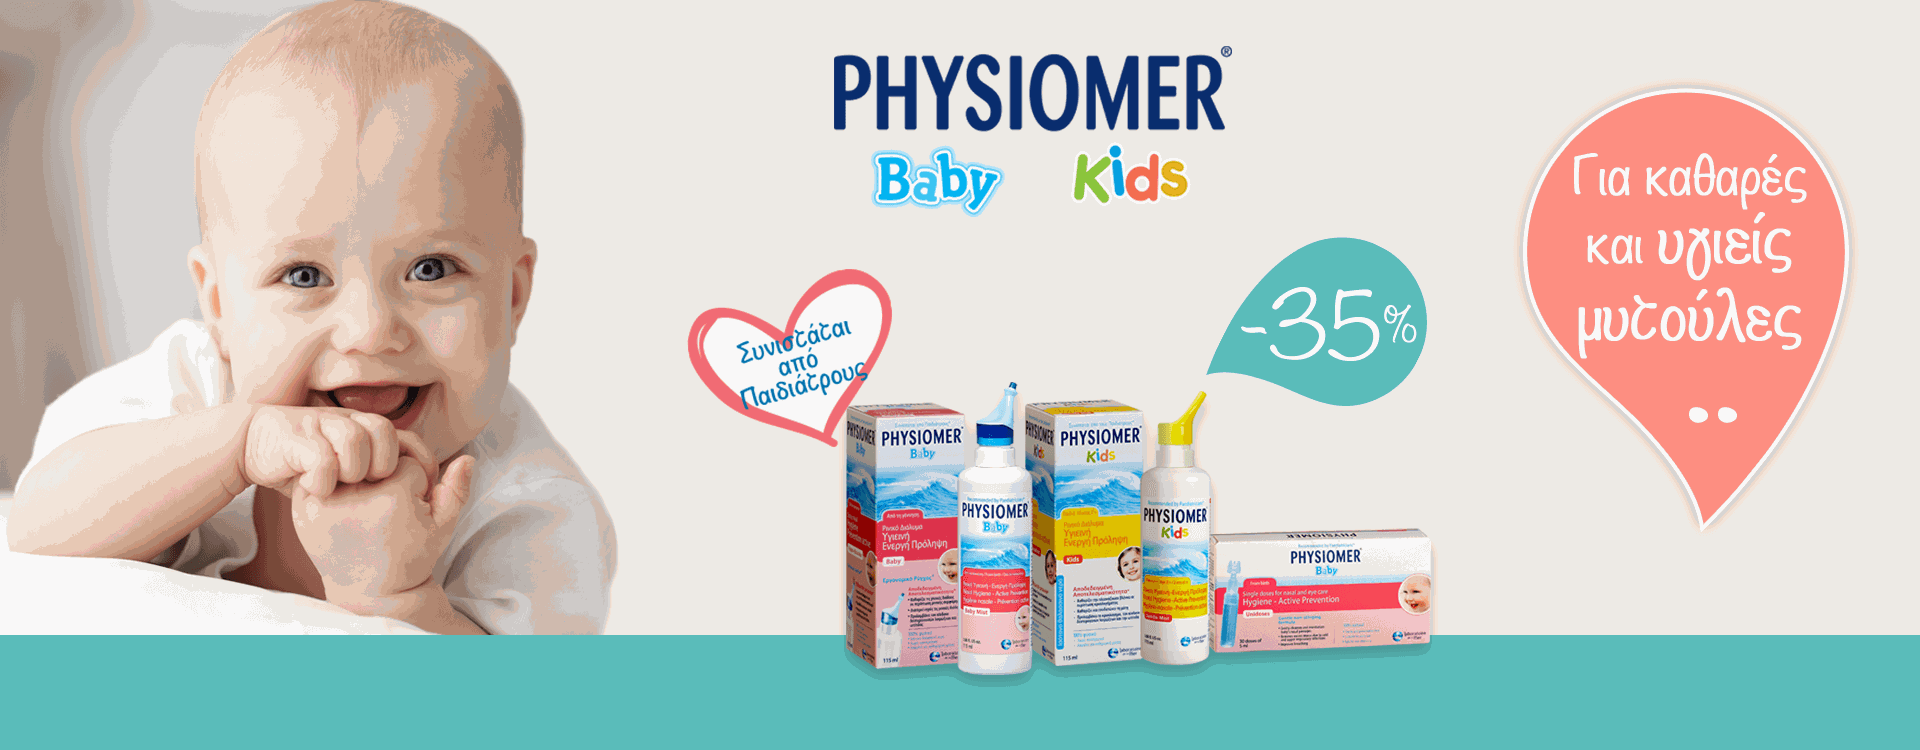 Slider physiomer baby kids feb19 1920x750